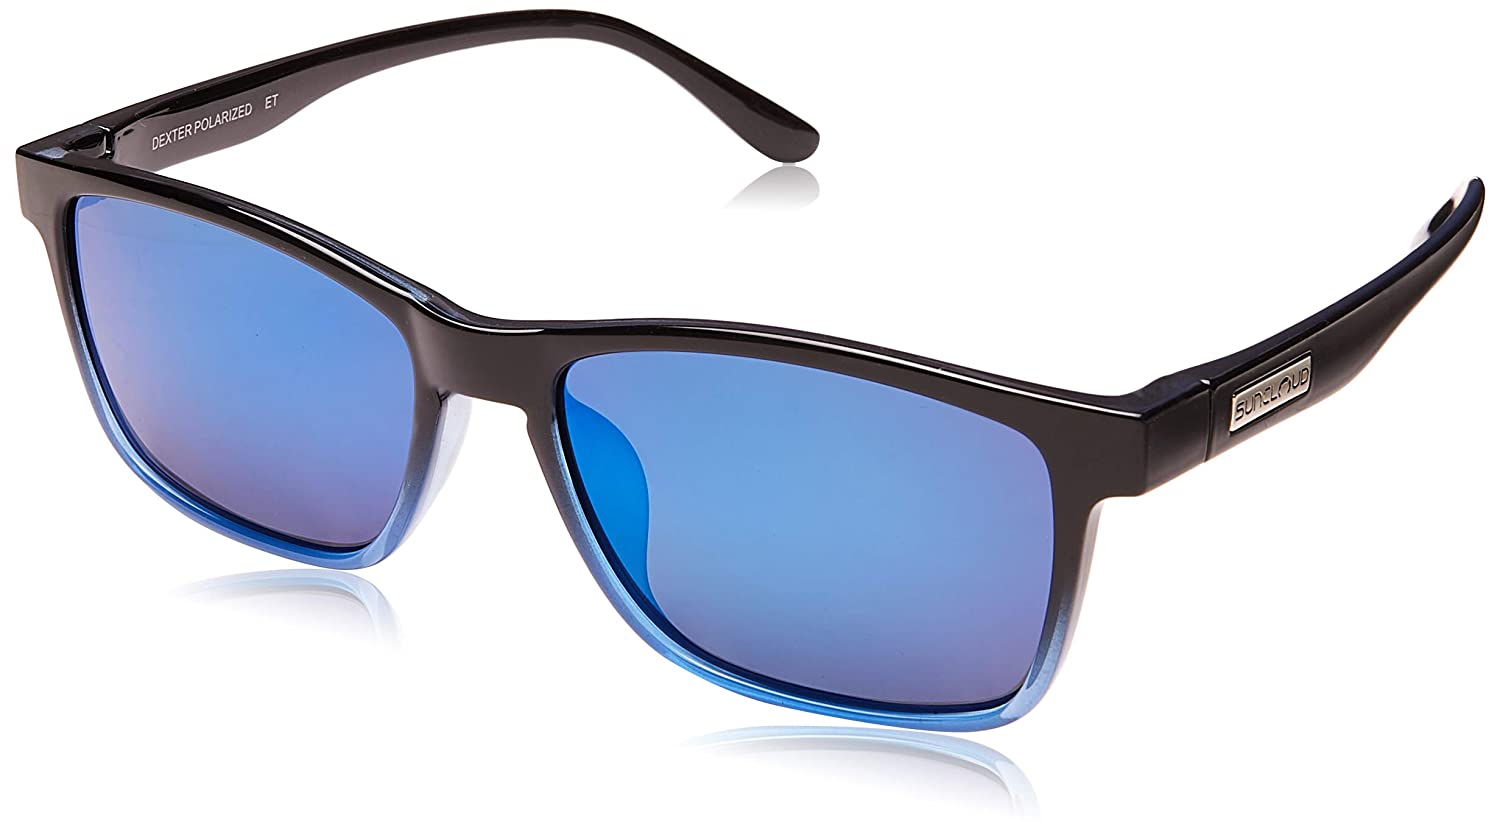 d2499e450e Amazon.com  Suncloud Dexter Polarized Sunglasses